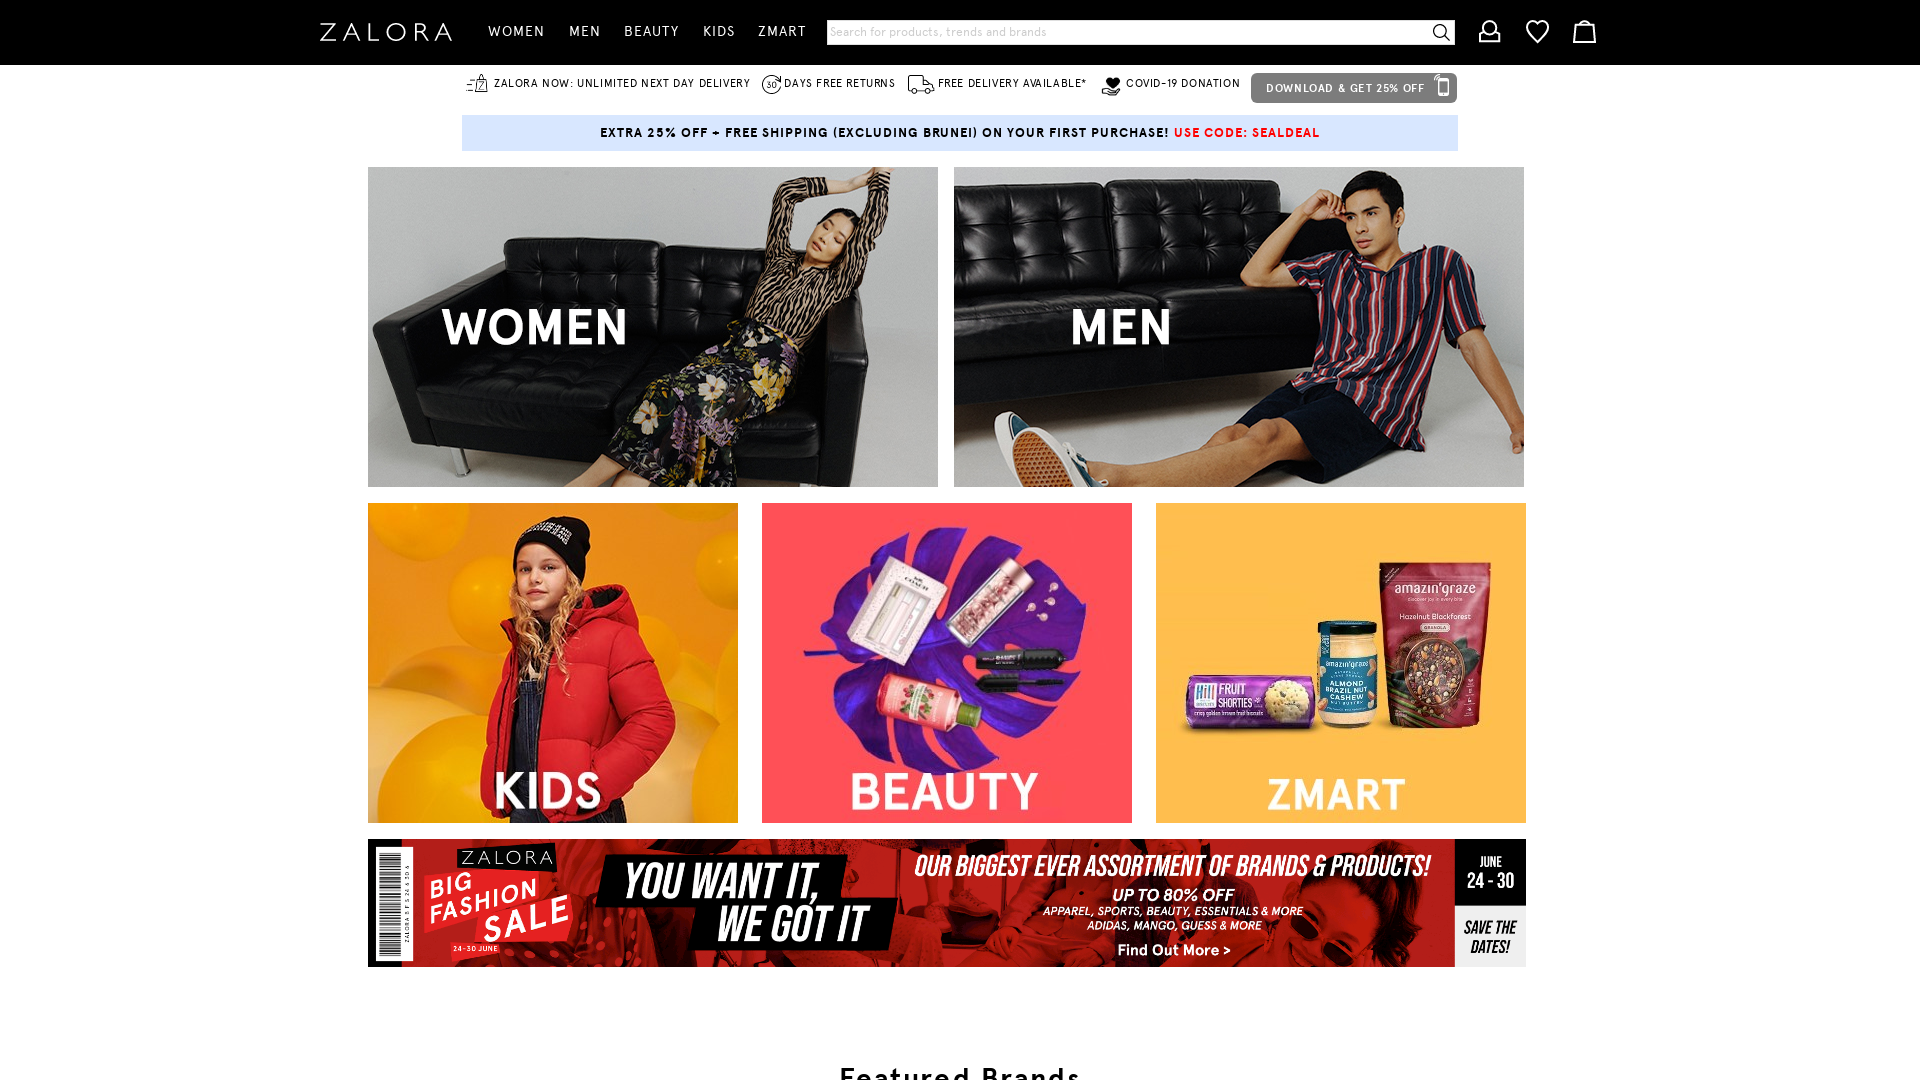 Zalora Hong Kong website